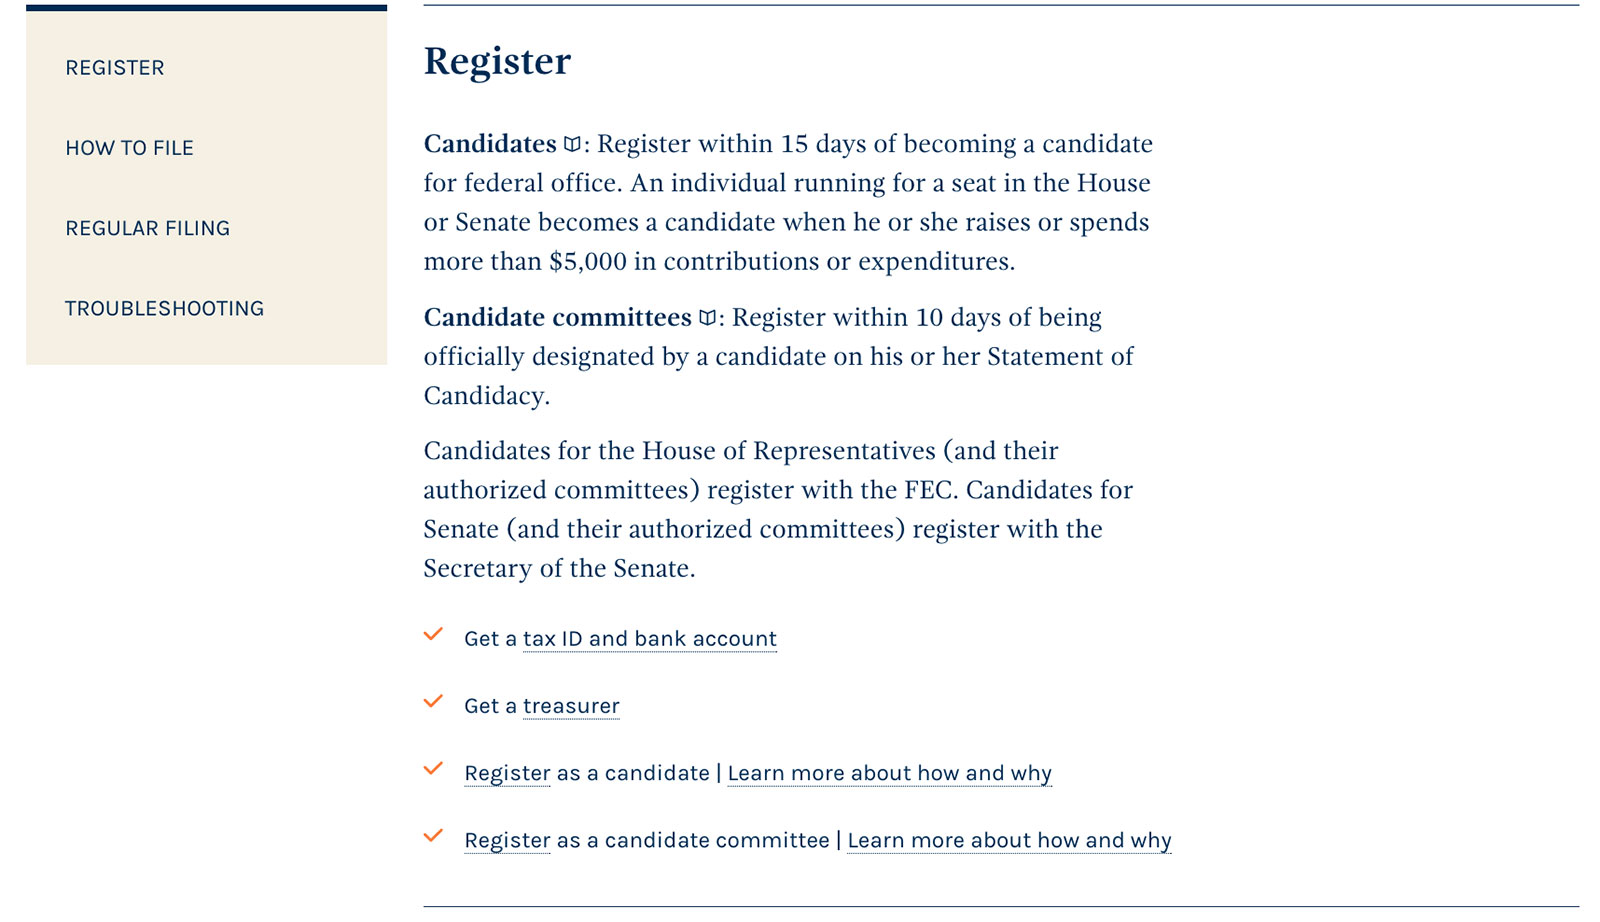 The new checklist for what you need to do to register with the FEC